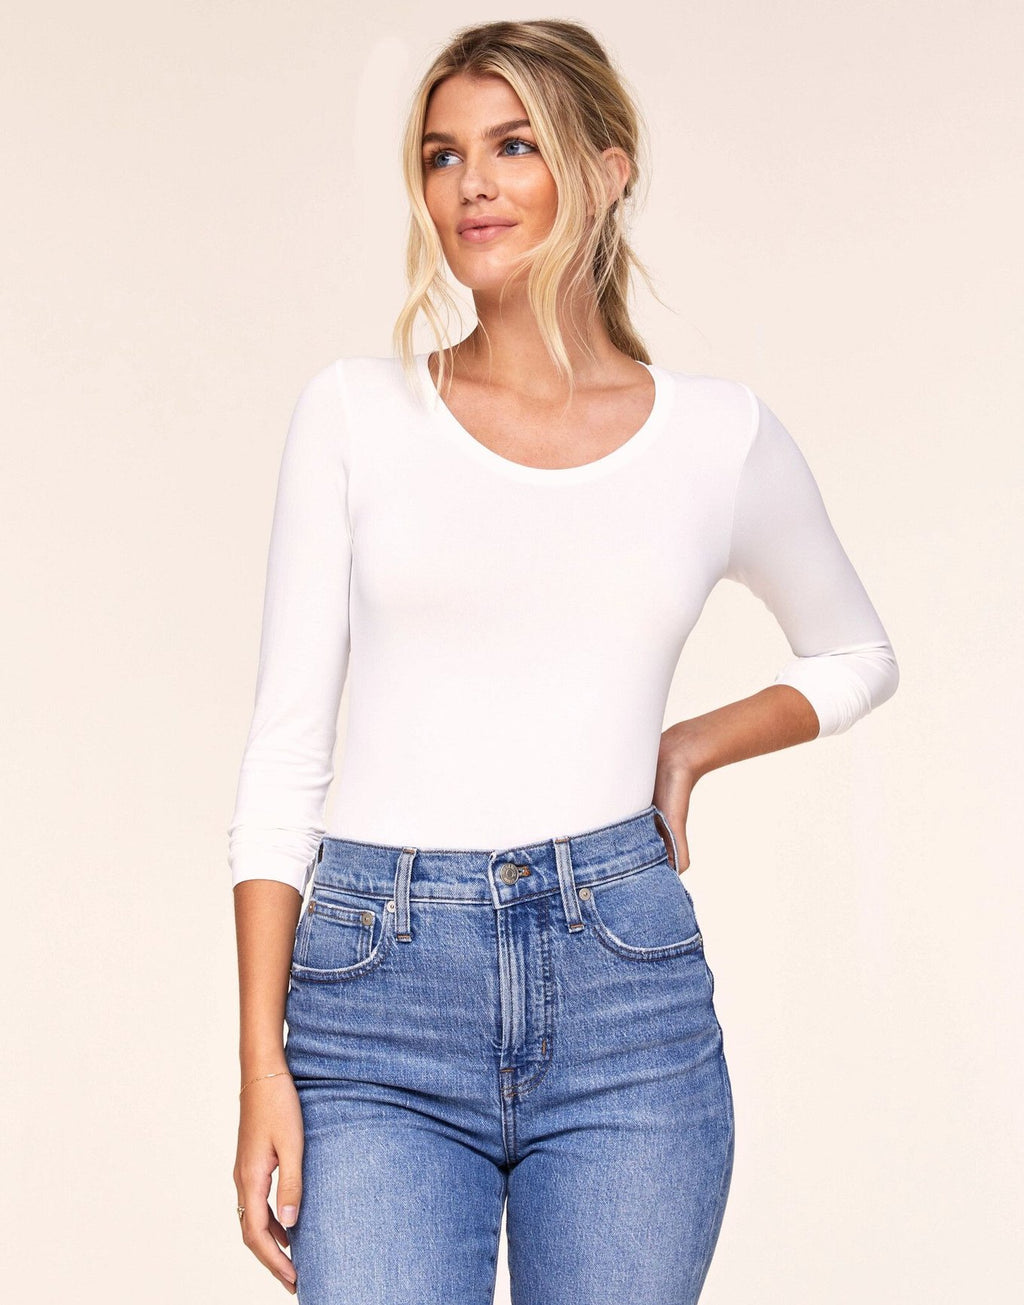 Coolibrium The Perfect Cami Cooling Cami in color Ensign Blue and shape camisoles